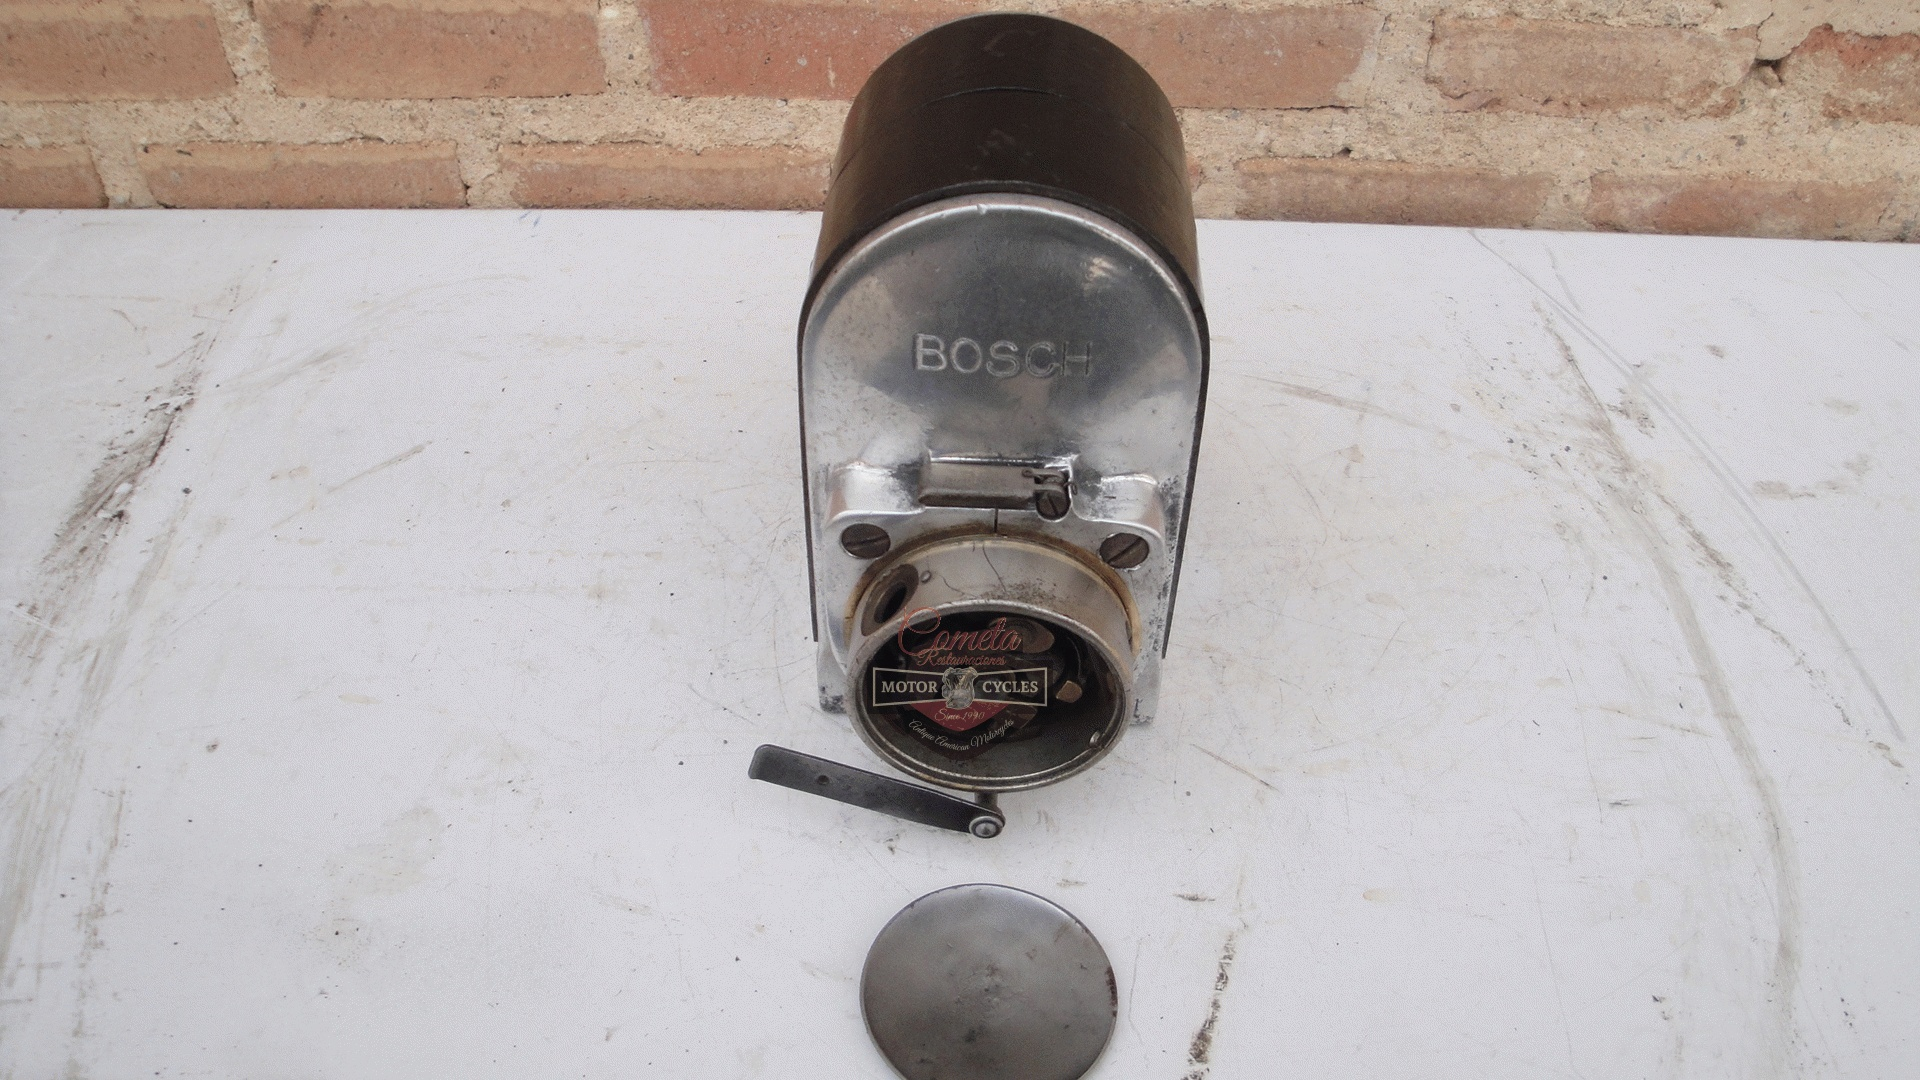 MAGNETO BOSCH ZE2  180°  NORTON /  BROUGH  SUPERIOR / BSA / COVENTRY EAGLE / ZENITH / AJS / ARIEL